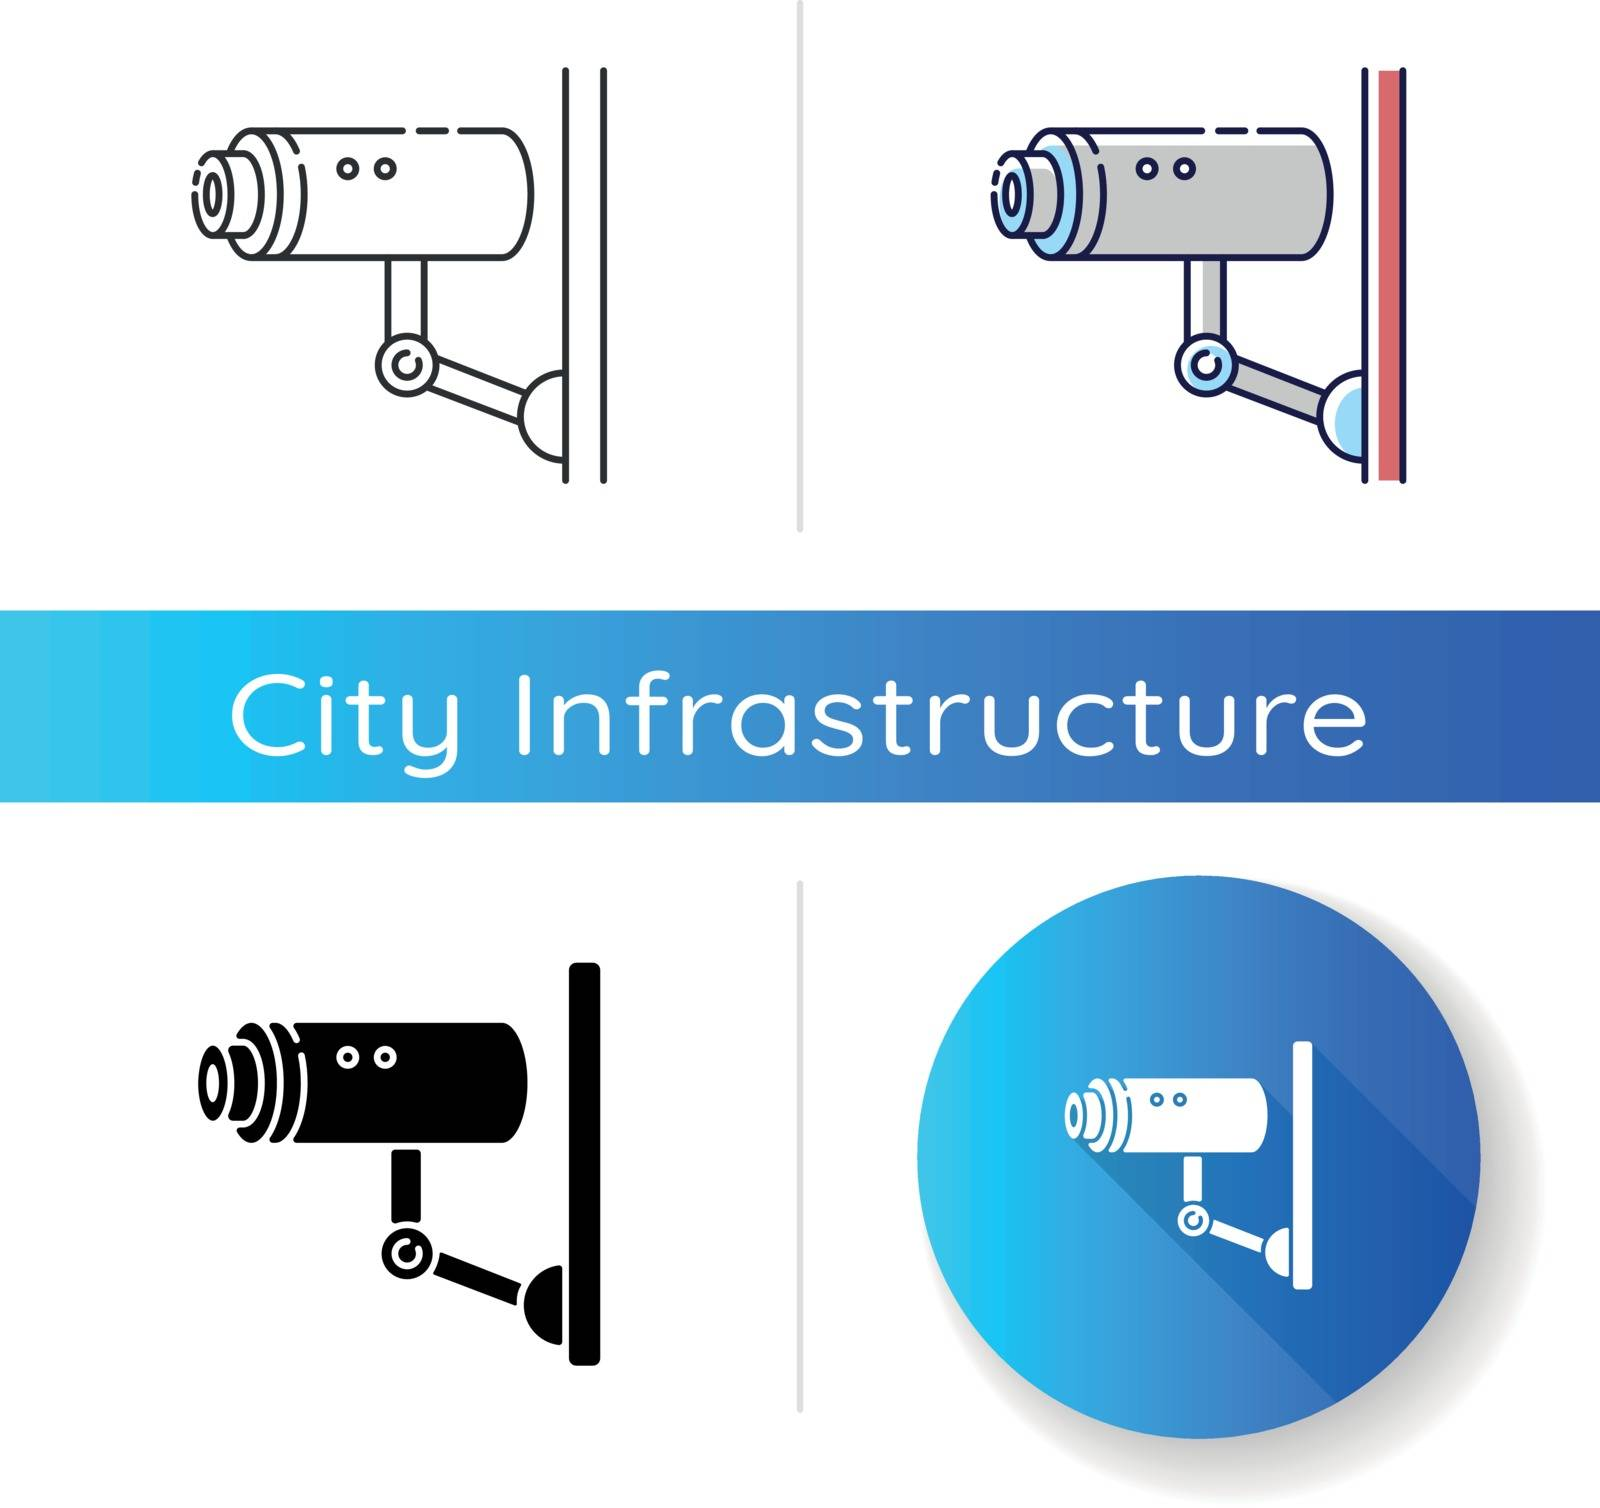 Video surveillance icon. Security camera for private safety. CCTV for monitoring area. Observe zone for danger of theft. Linear black and RGB color styles. Isolated vector illustrations